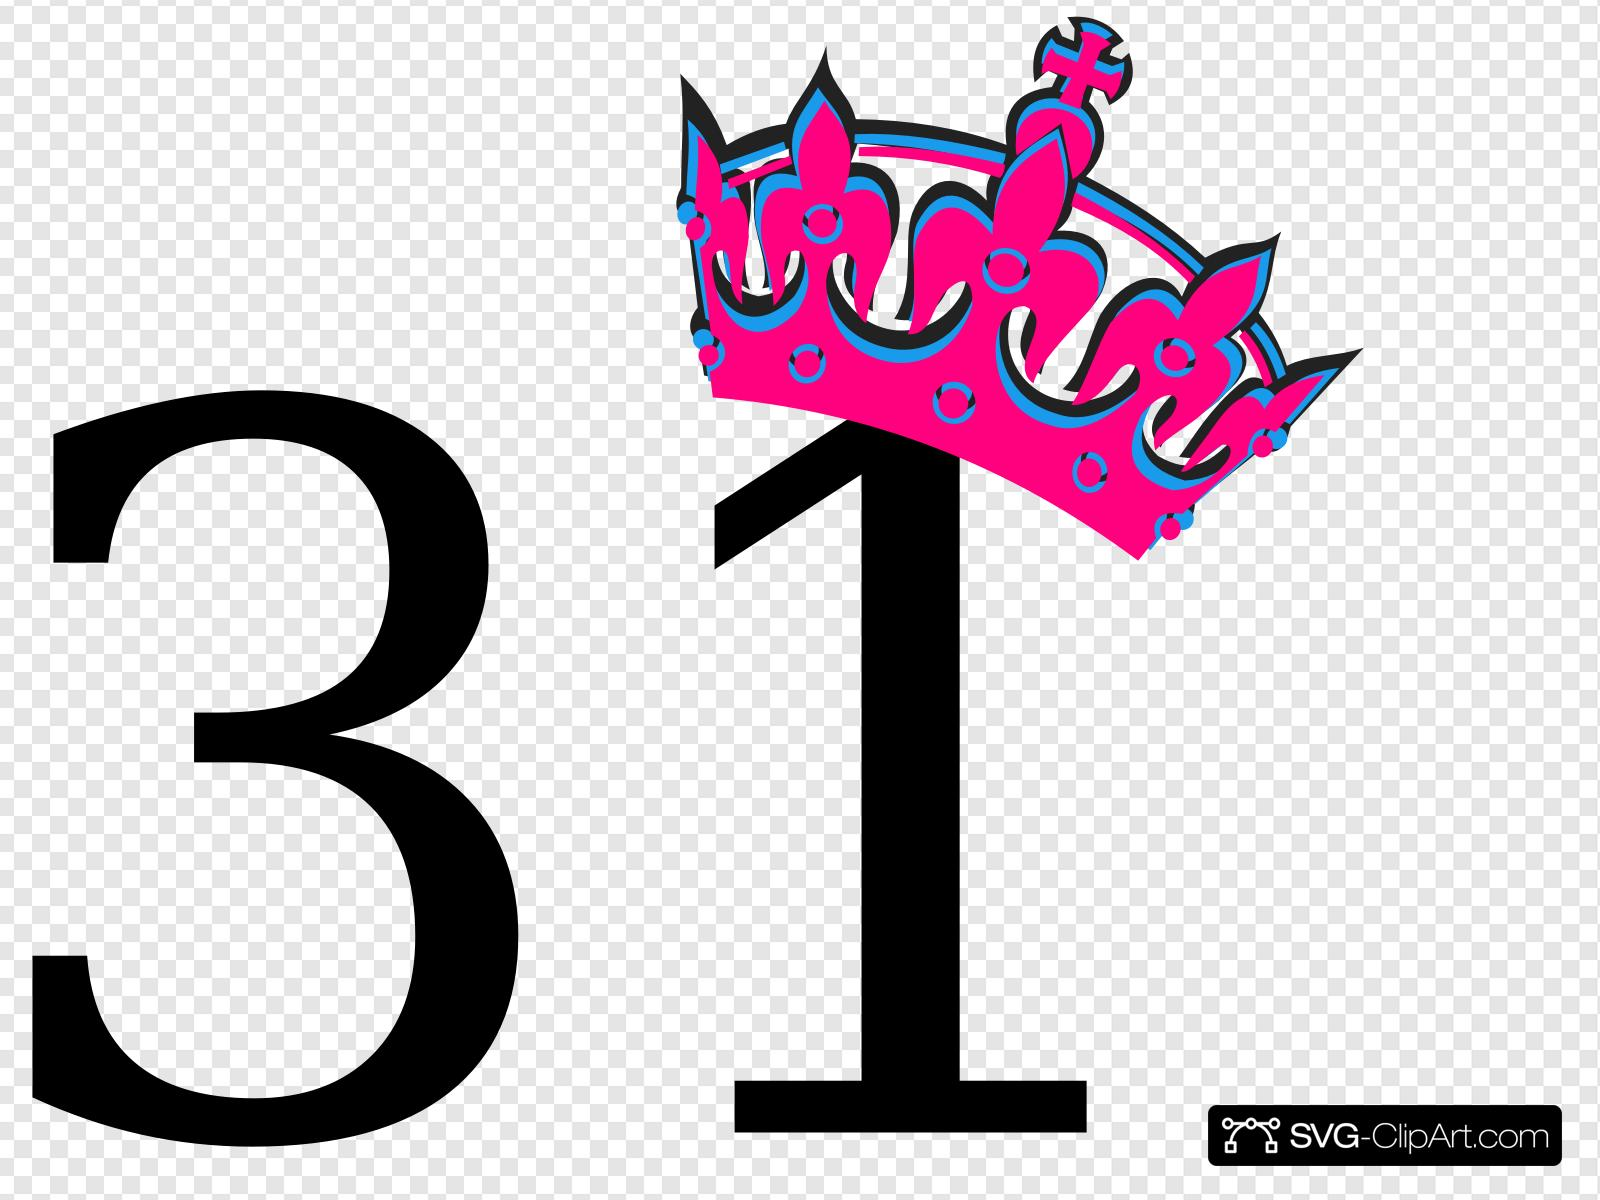 Pink Tilted Tiara And Number 31 Clip art, Icon and SVG.